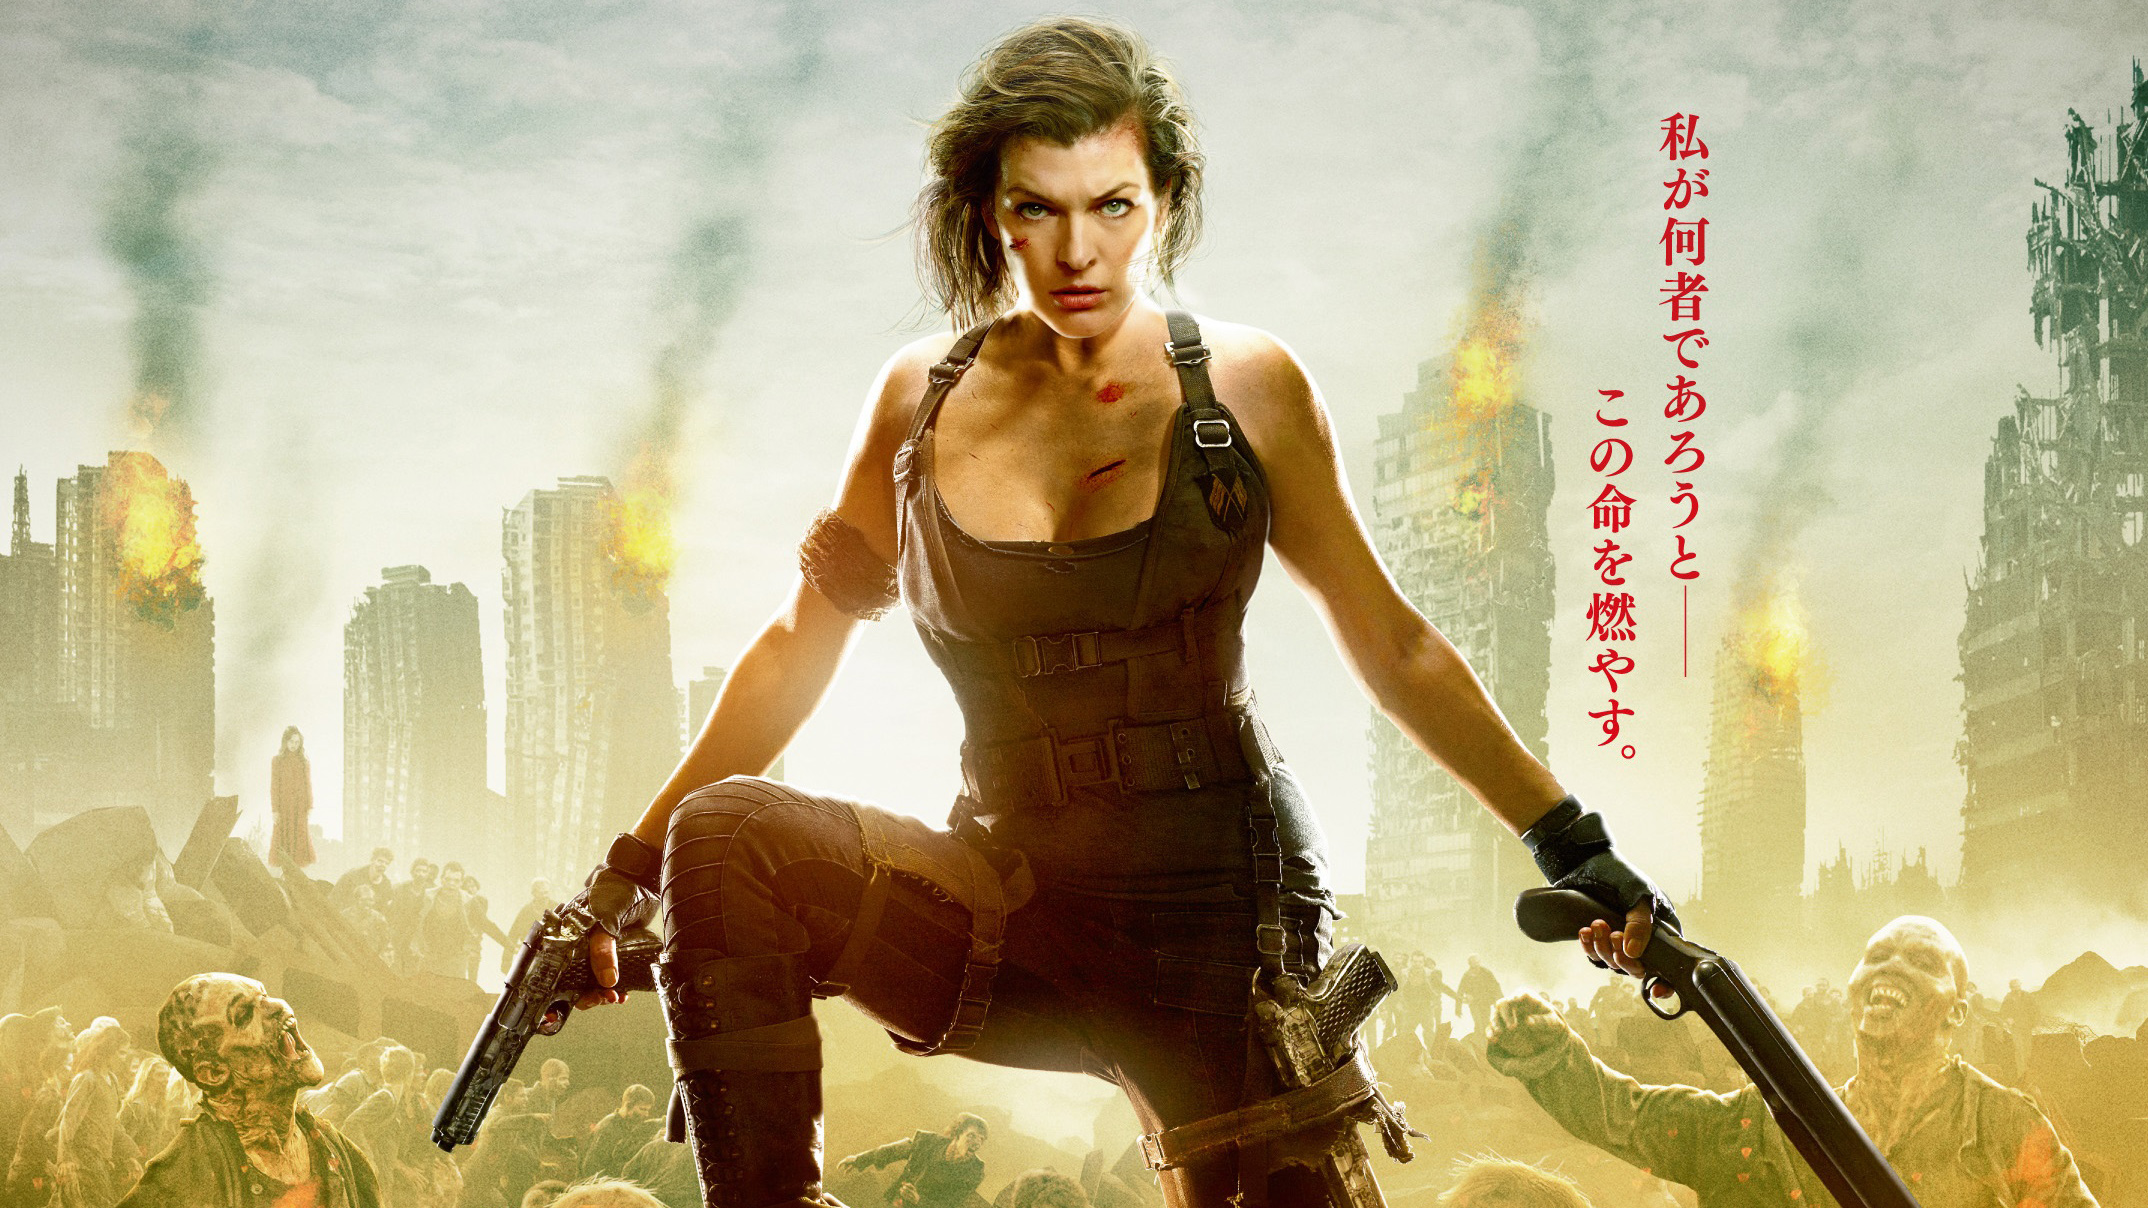 Resident Evil The Final Chapter Hd , HD Wallpaper & Backgrounds